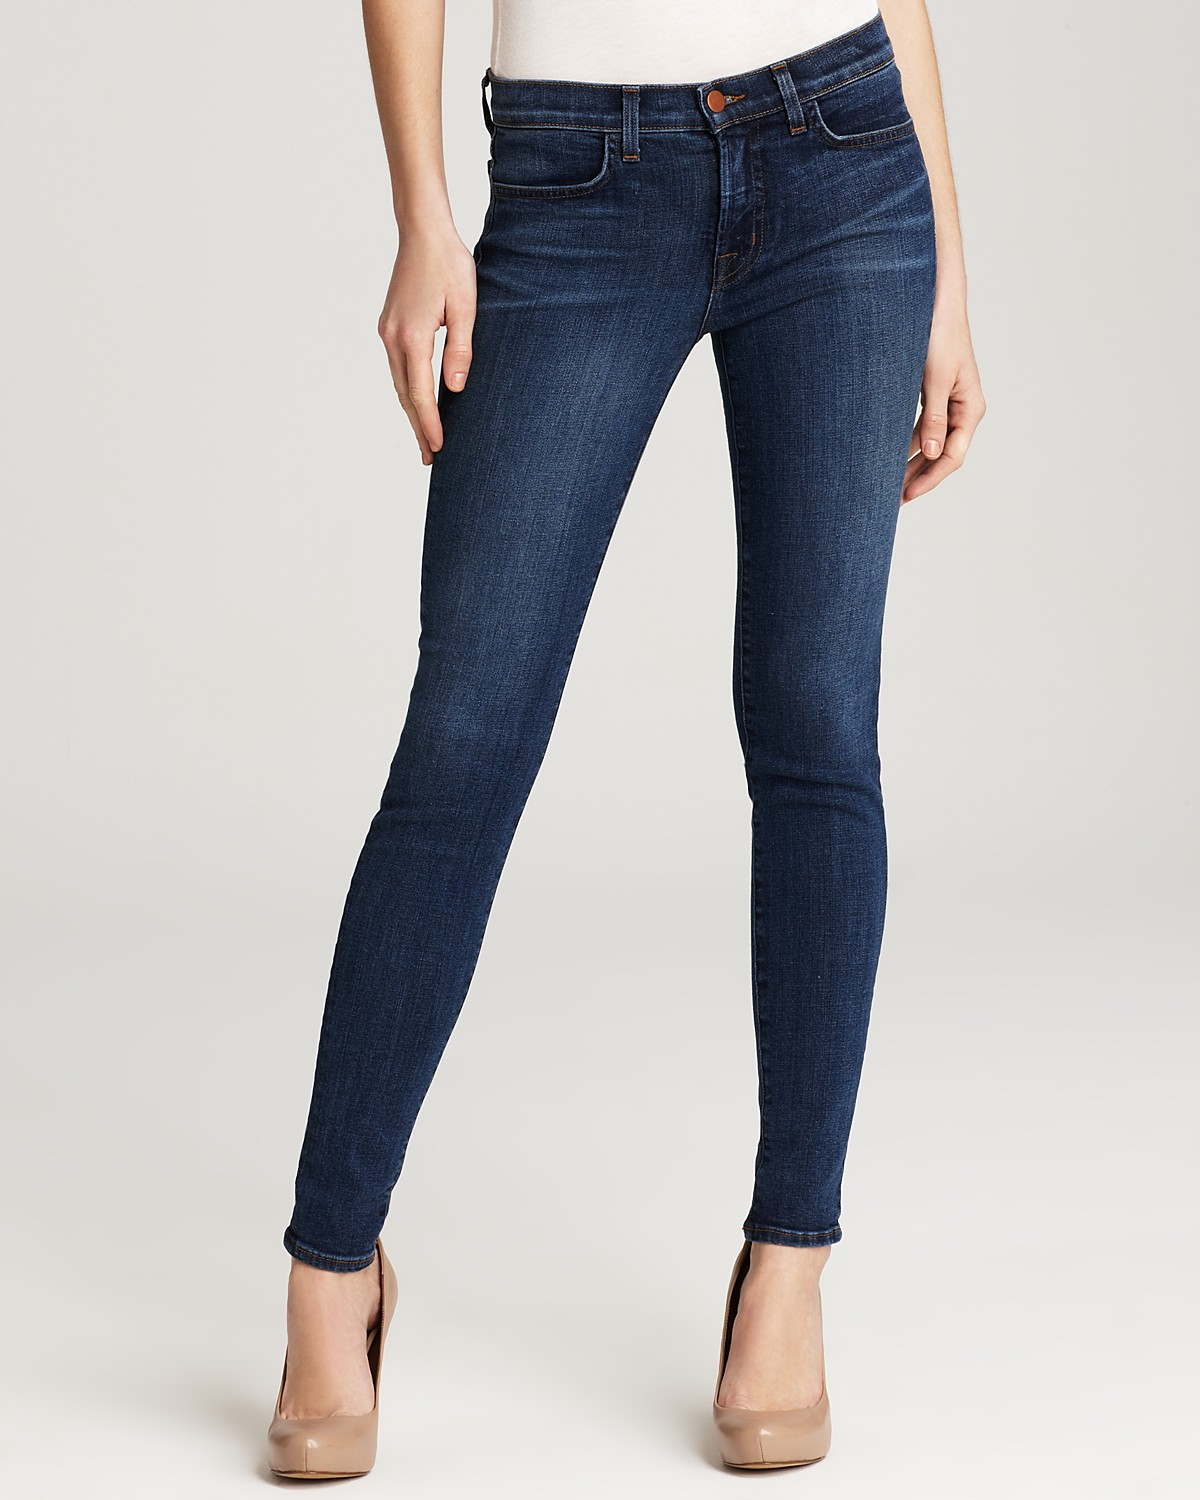 Shop for women's skinny jeans at ASOS. Ultra skinny jeans are a great style option. Browse our skin tight jeans in every wash from light to dark to black. Missguided Tall Vice High Waisted Super Stretch Skinny Jean. £ COLLUSION Plus skinny jeans in black. £ COLLUSION skinny jeans in .